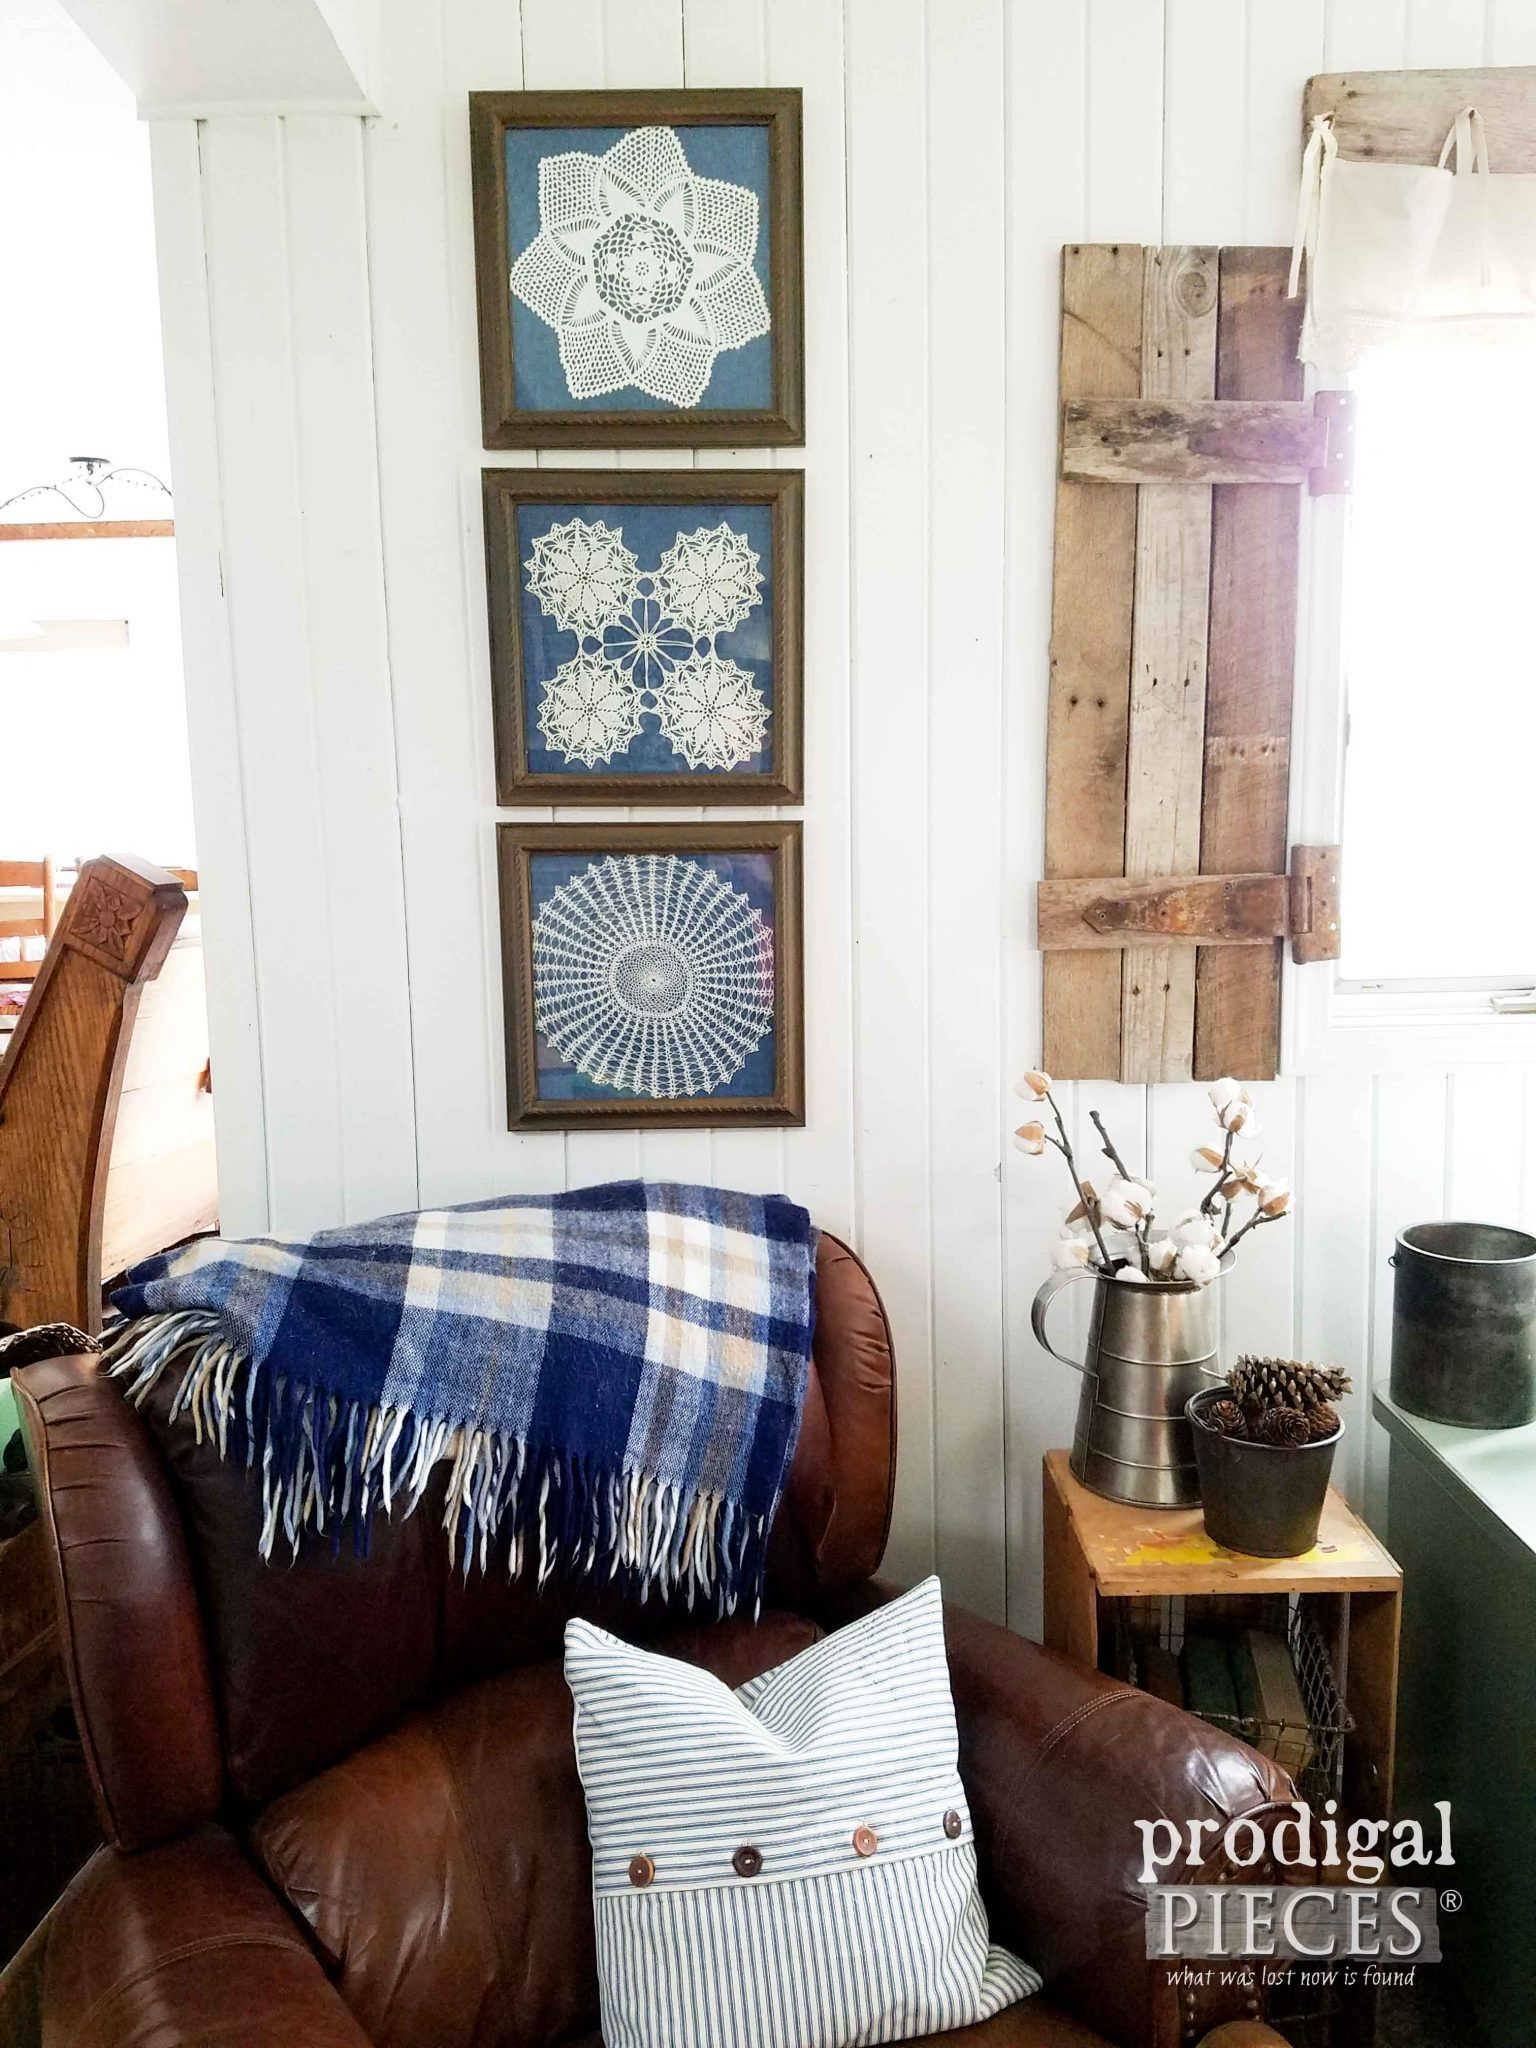 Framed Doily Wall Art from Curbside Finds | Walls, Funky junk and ...